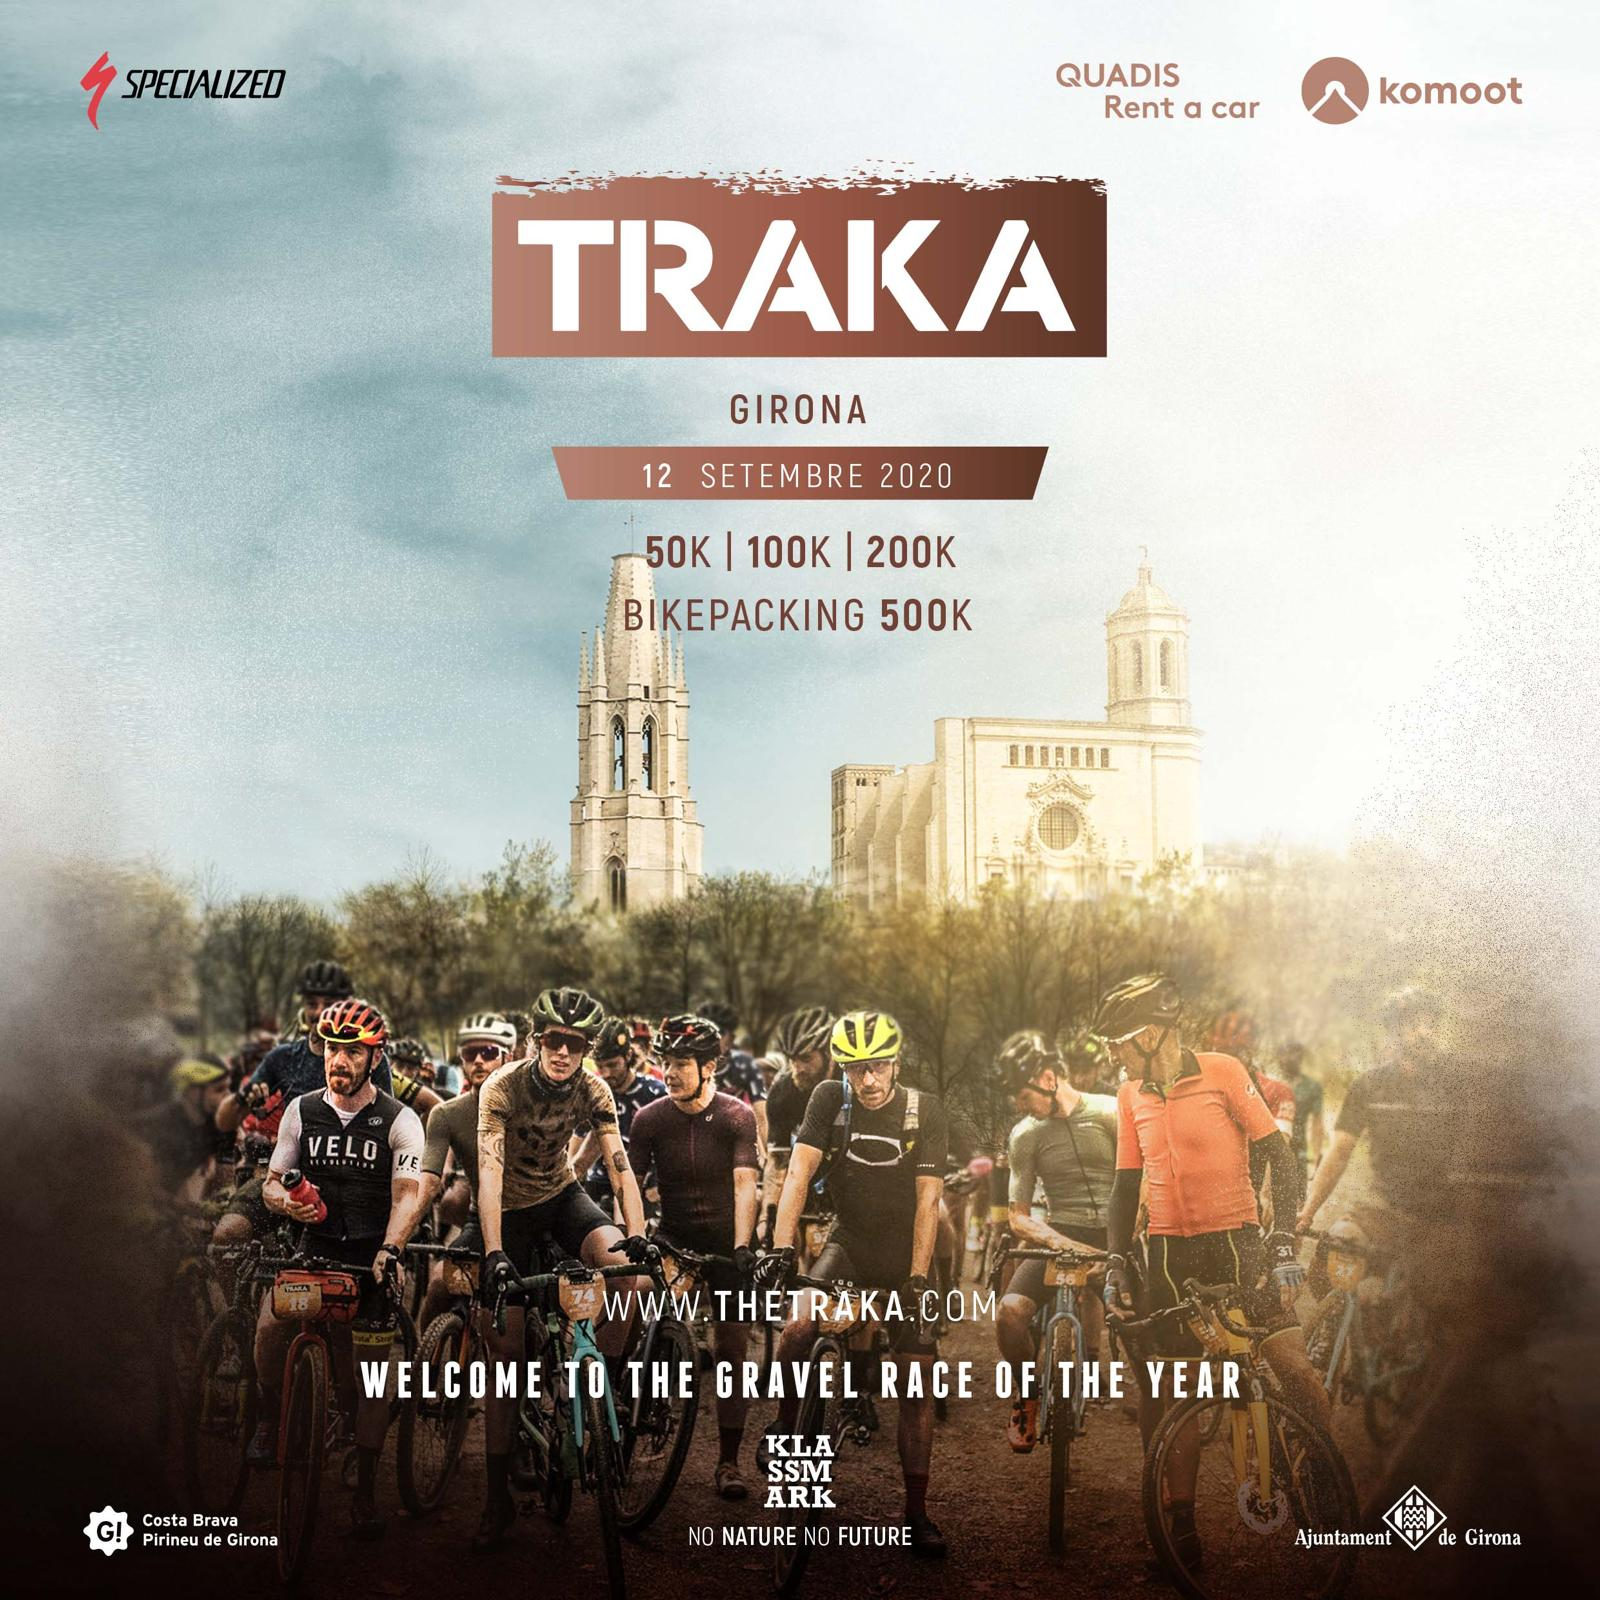 The Traka Girona Gravel